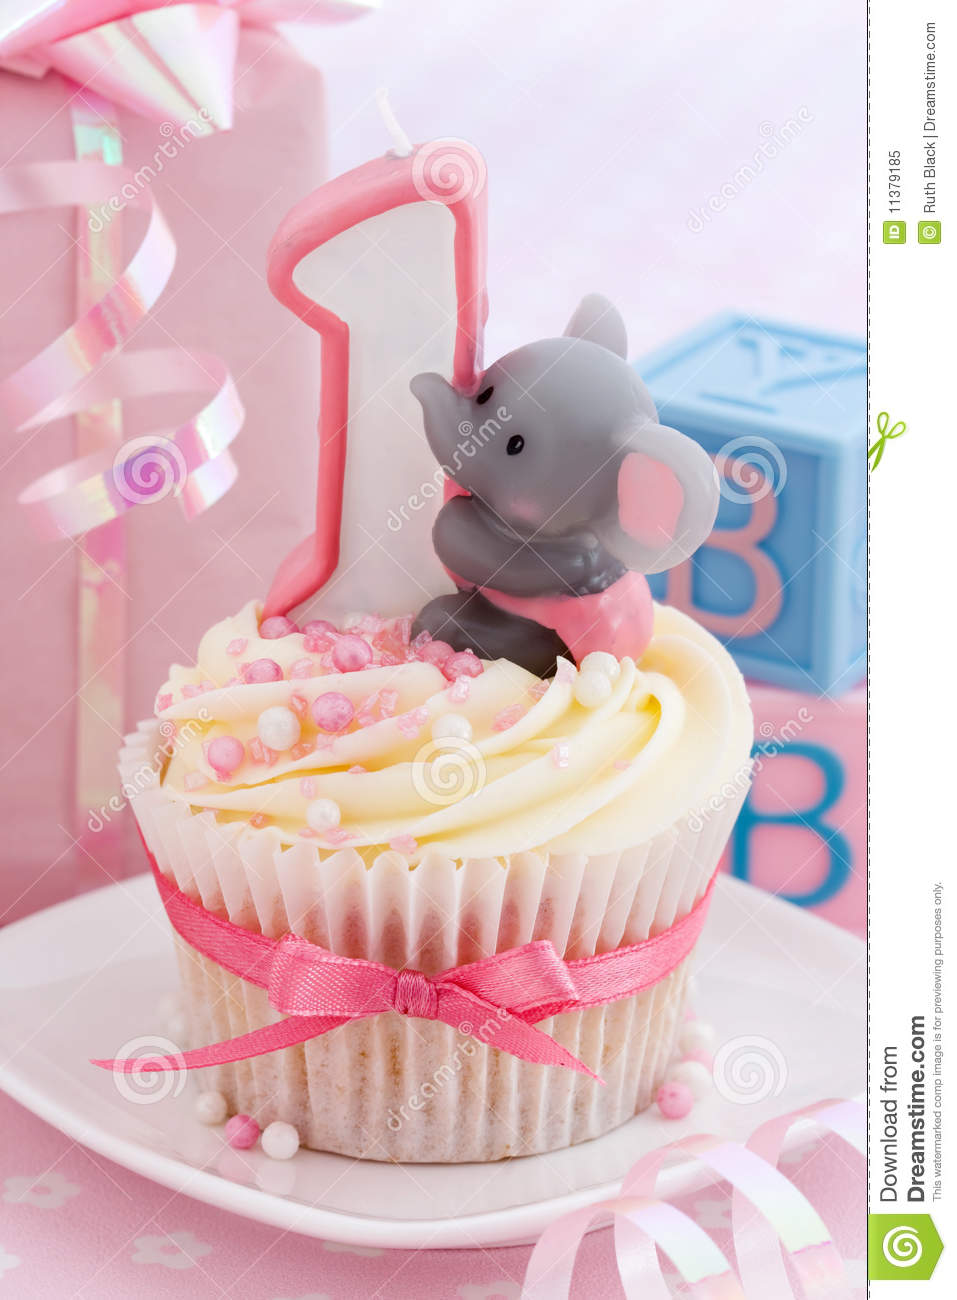 Sensational Baby S First Birthday Stock Image Image Of Party Butter 11379185 Funny Birthday Cards Online Inifofree Goldxyz